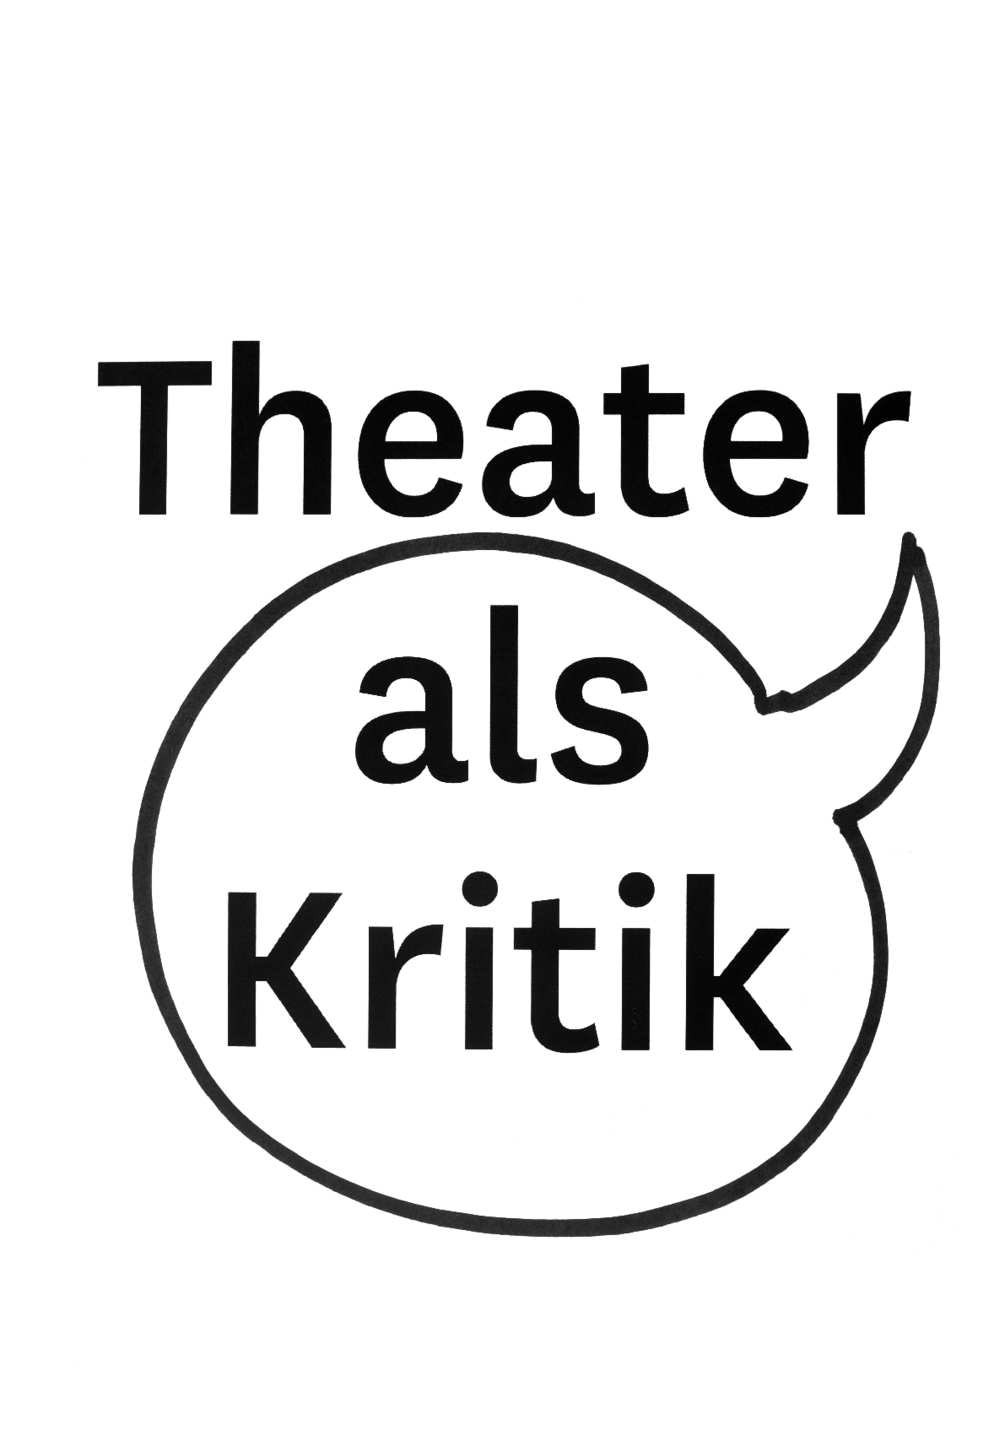 theater-as-critique-slip-08-1005x1435px